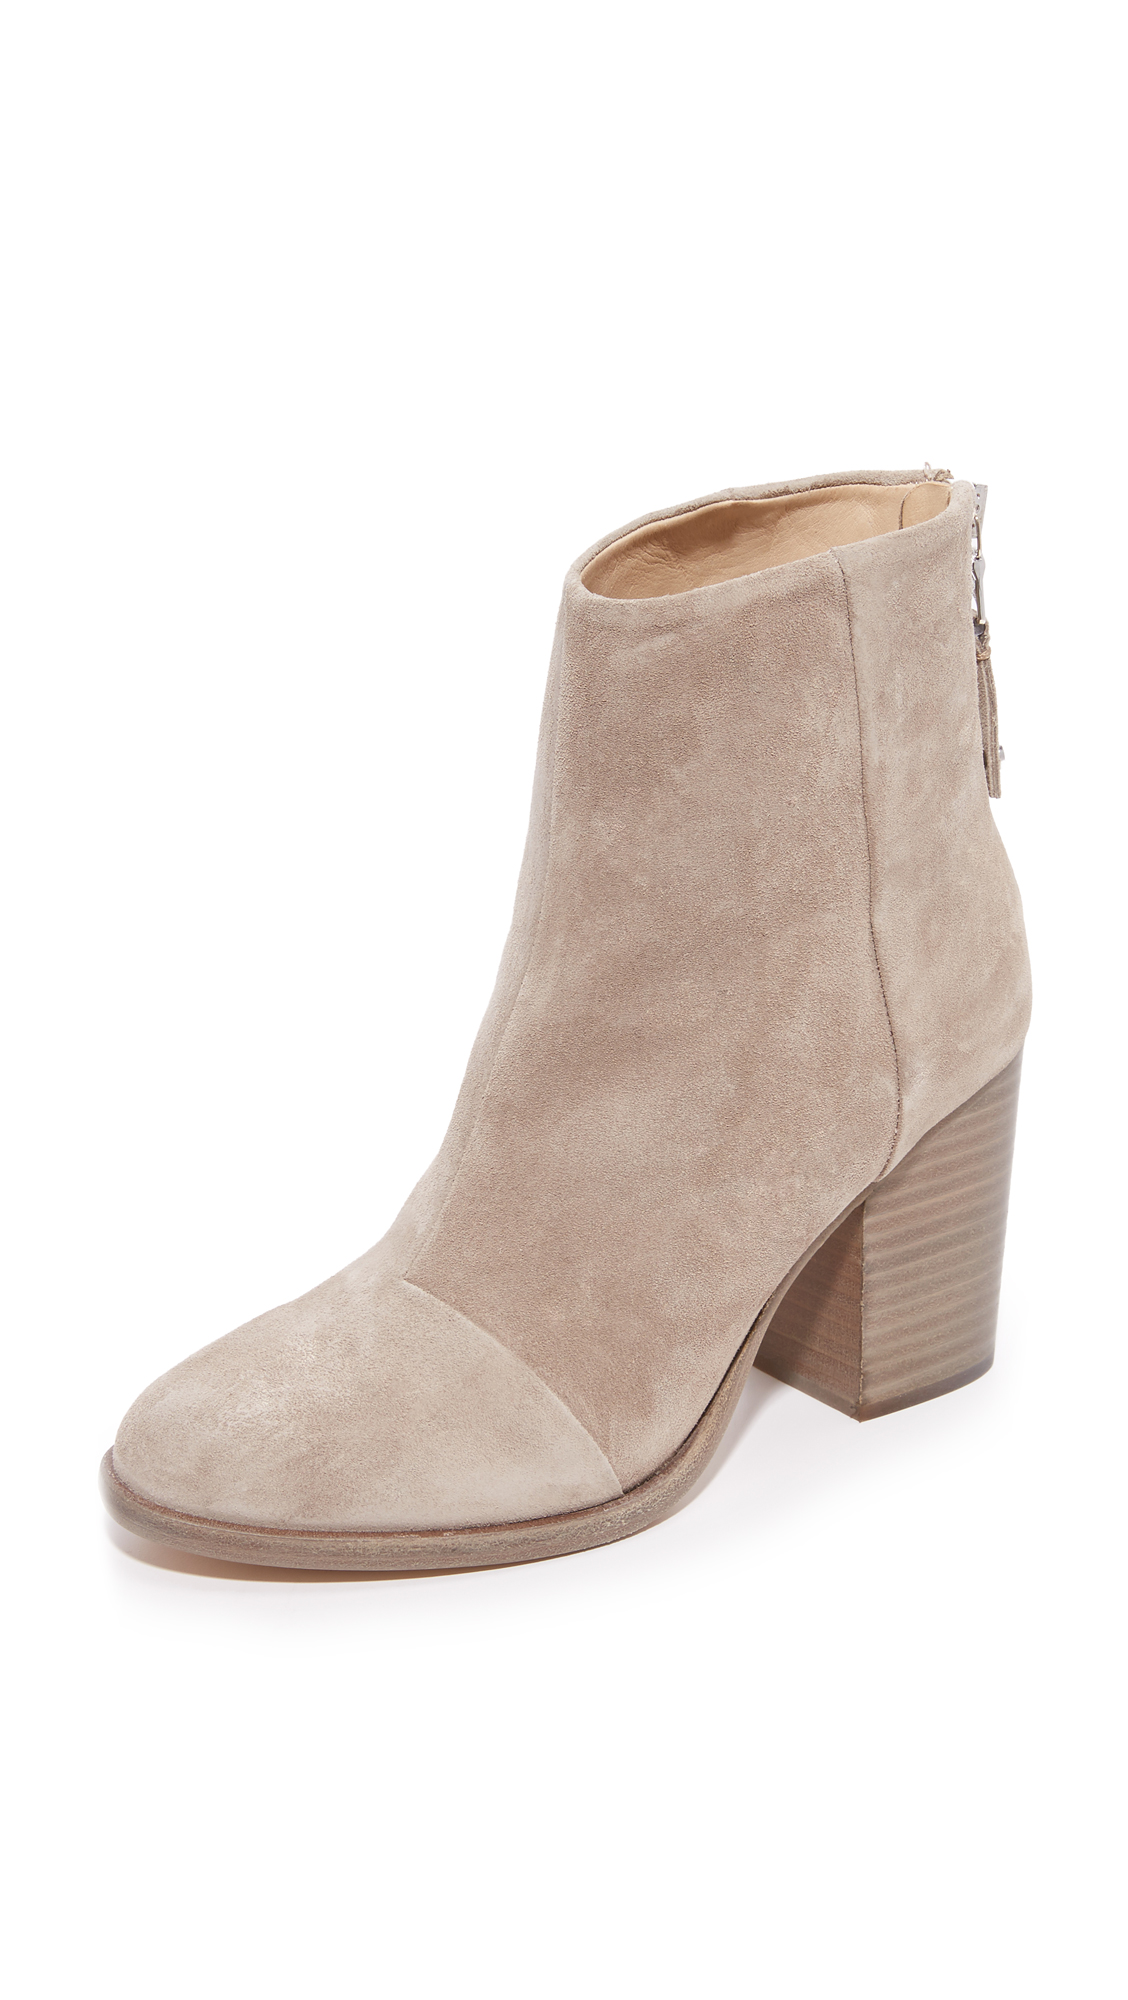 Rag & Bone Ashby Ankle Booties - Stone